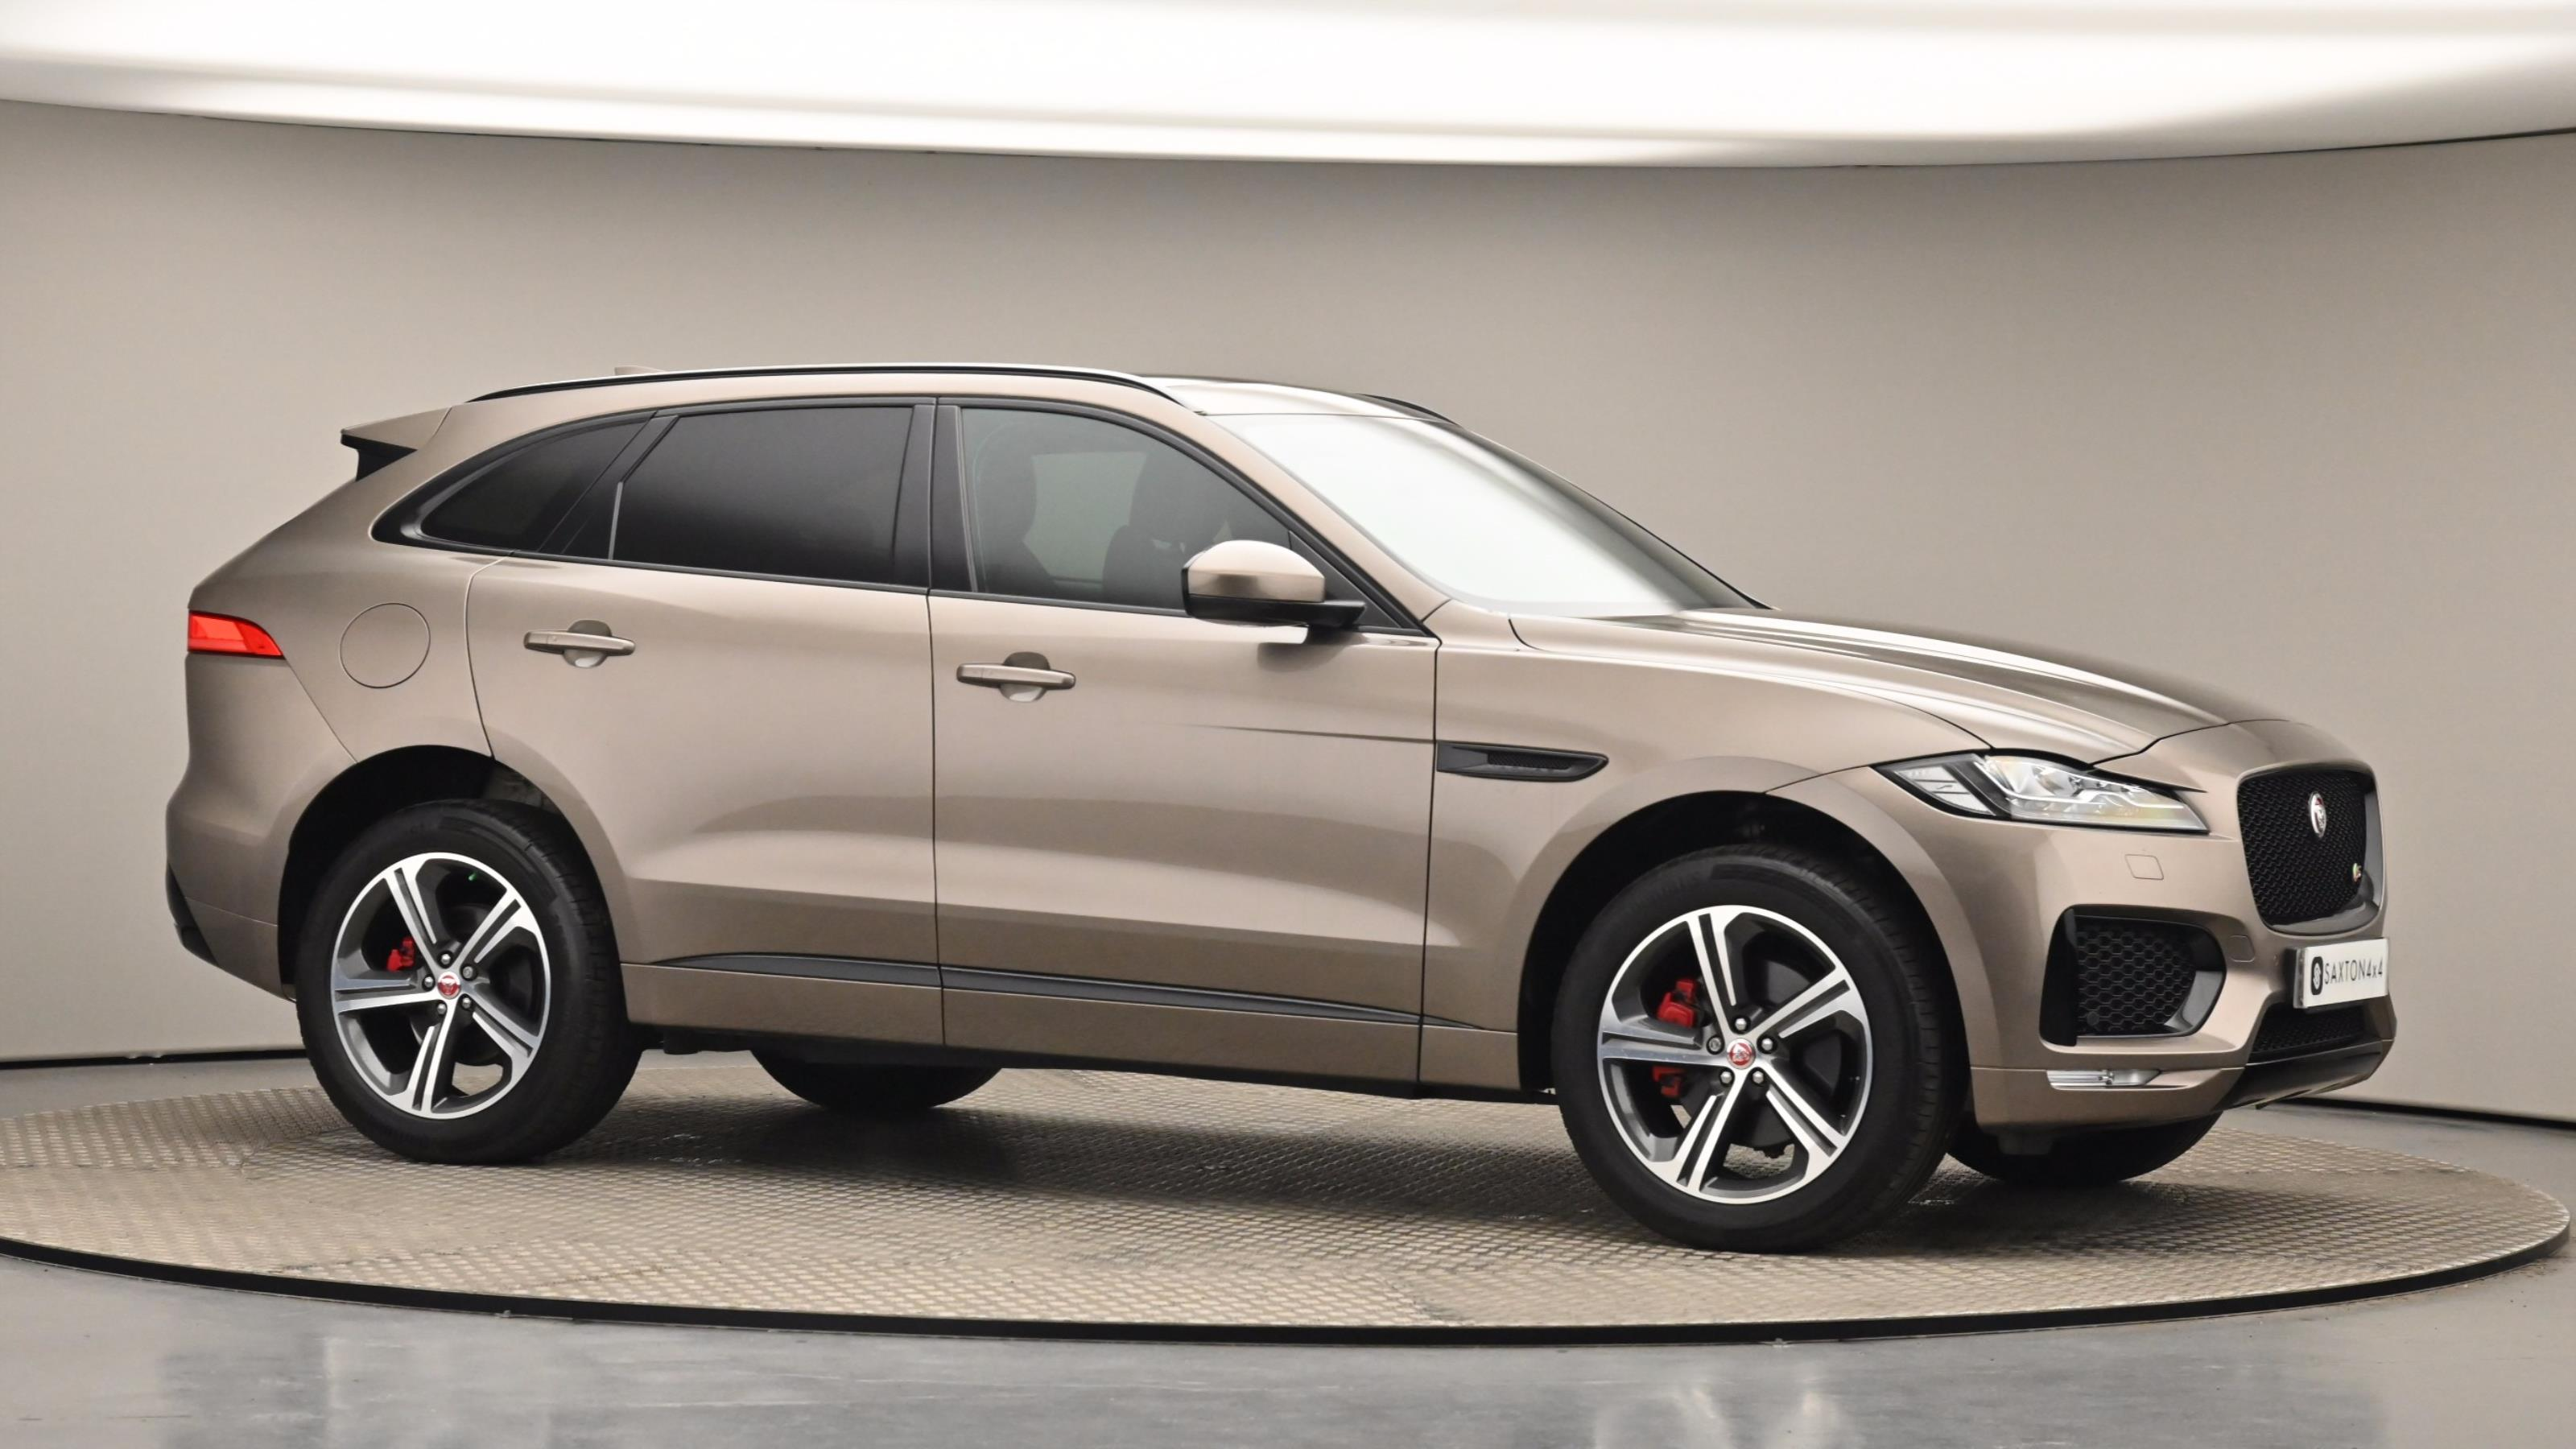 Used 2016 Jaguar F-PACE 3.0 Supercharged V6 S 5dr Auto AWD Brown at Saxton4x4